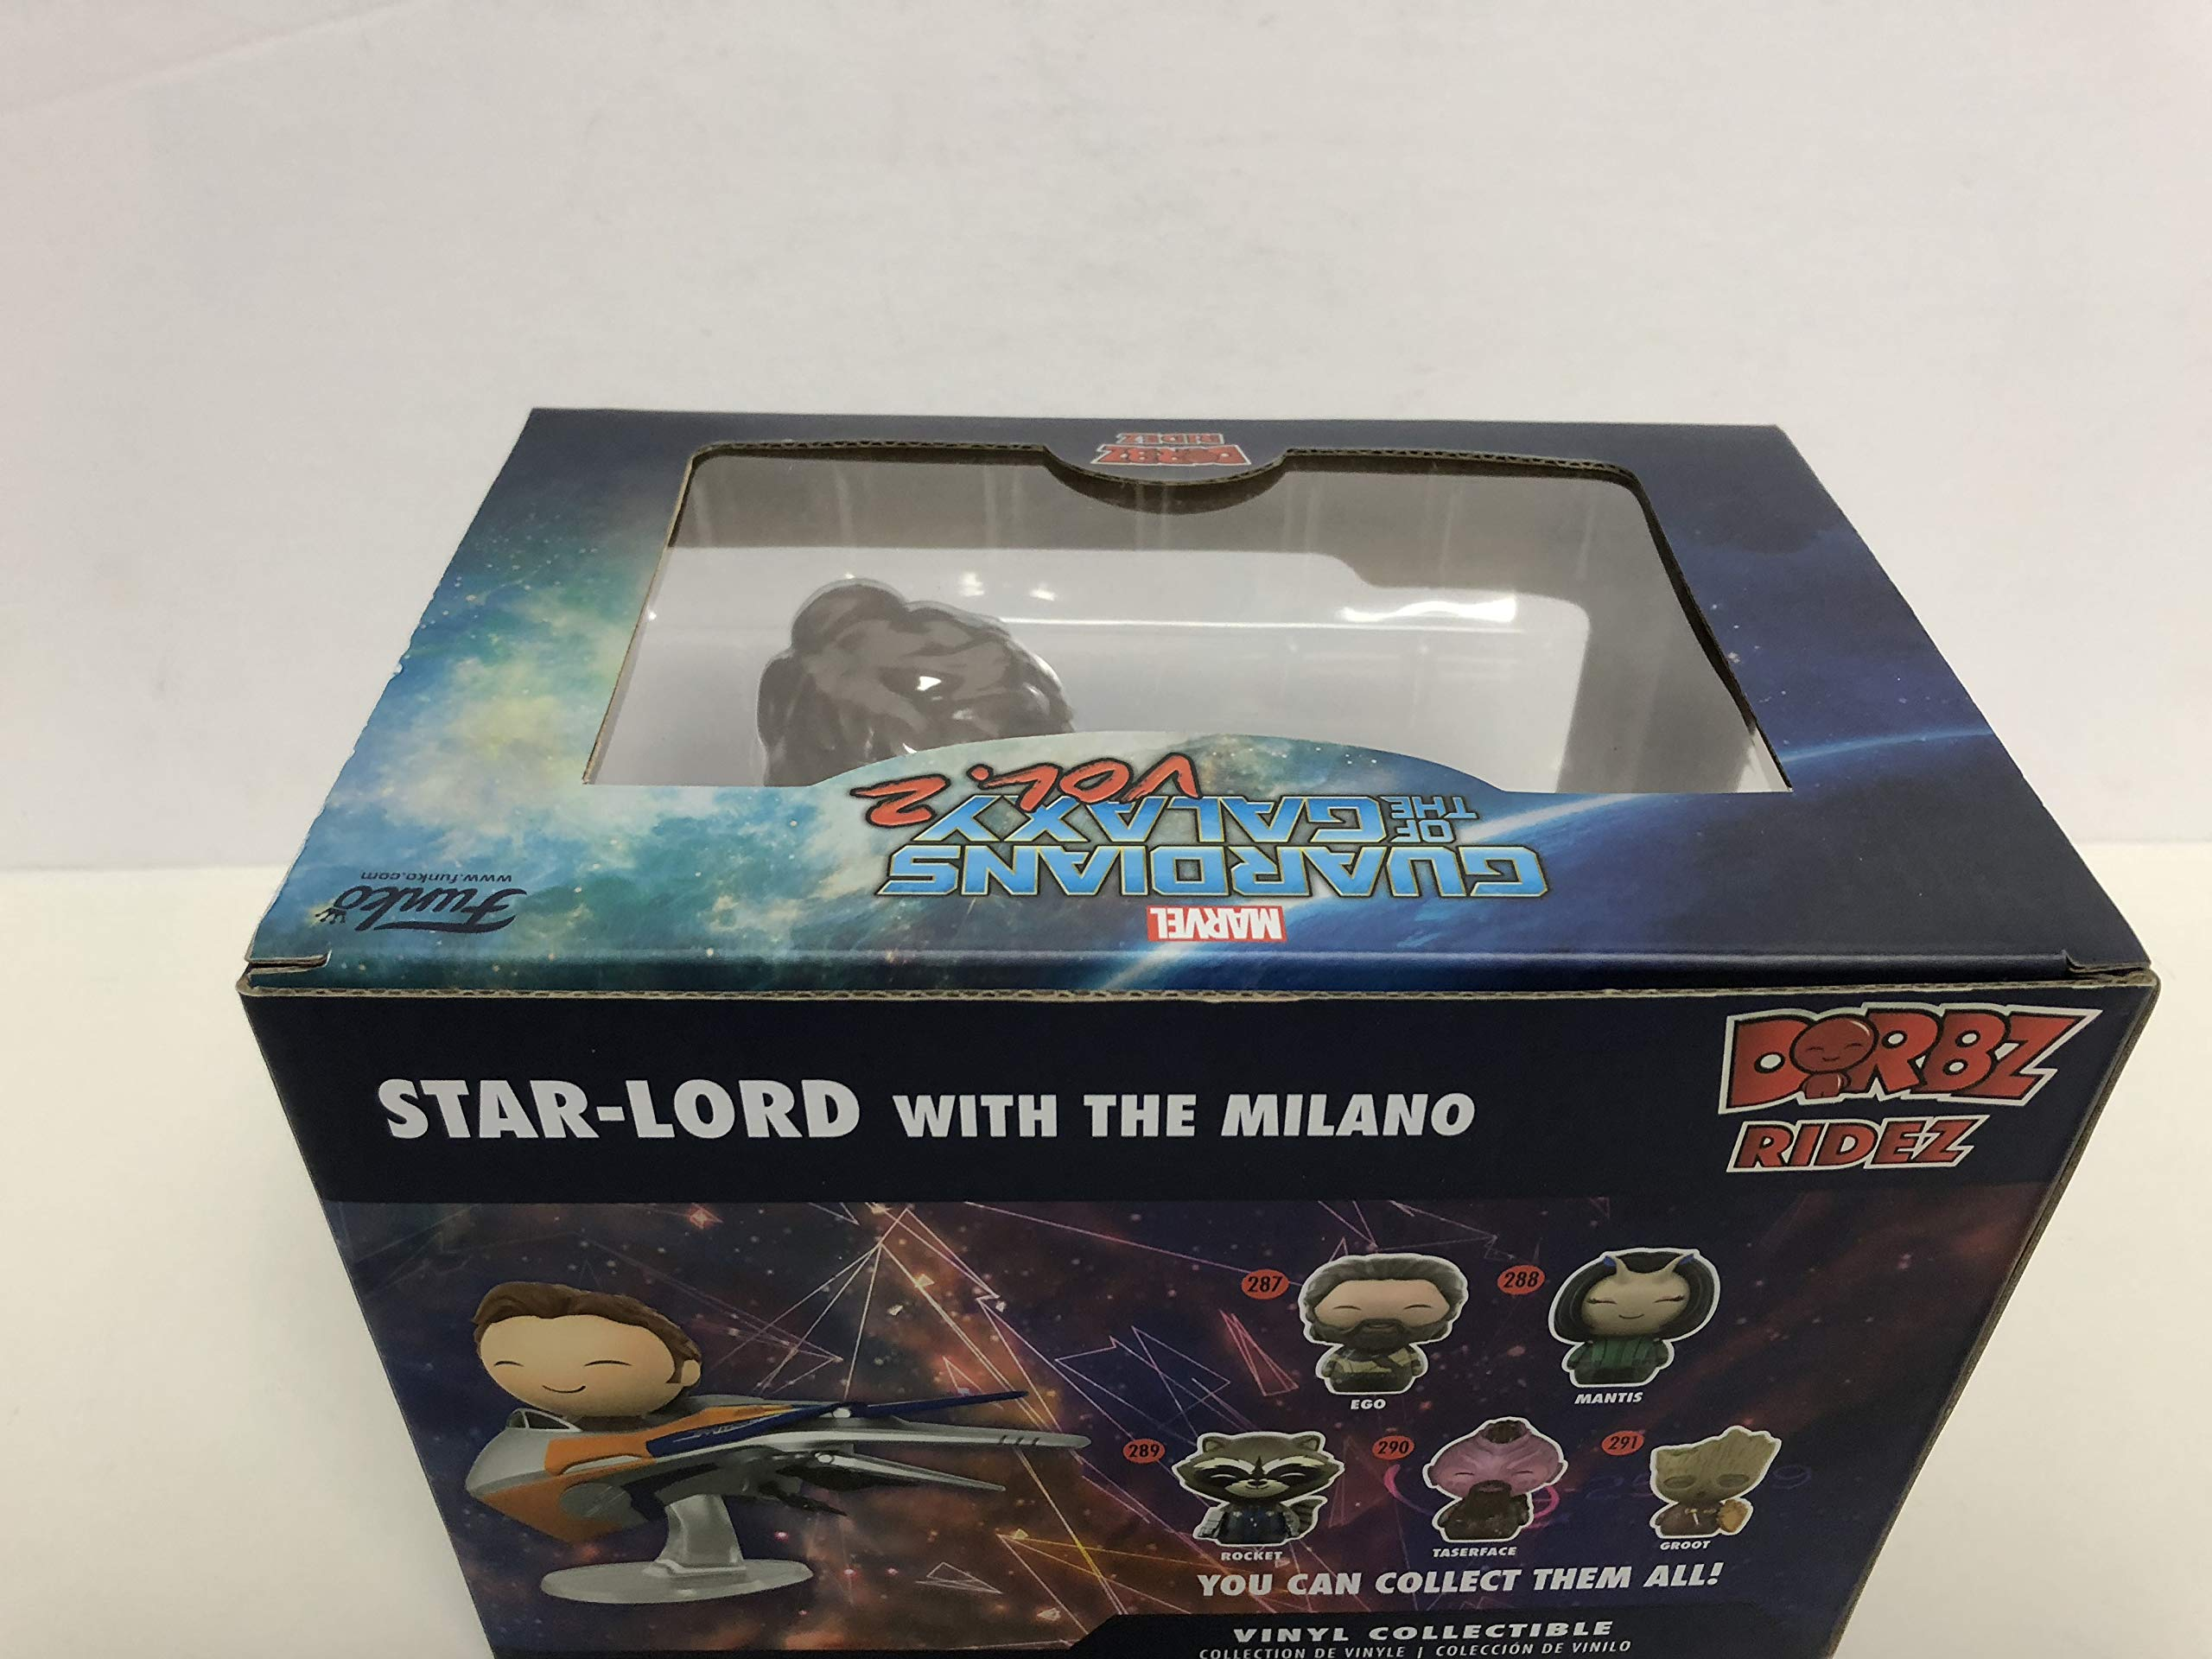 DORBZ RIDEZ Star Lord with the Milano 27 Guardians of the Galaxy Vol. 2 vinyl collectible Funko DC Legion of Collectors Exclusive